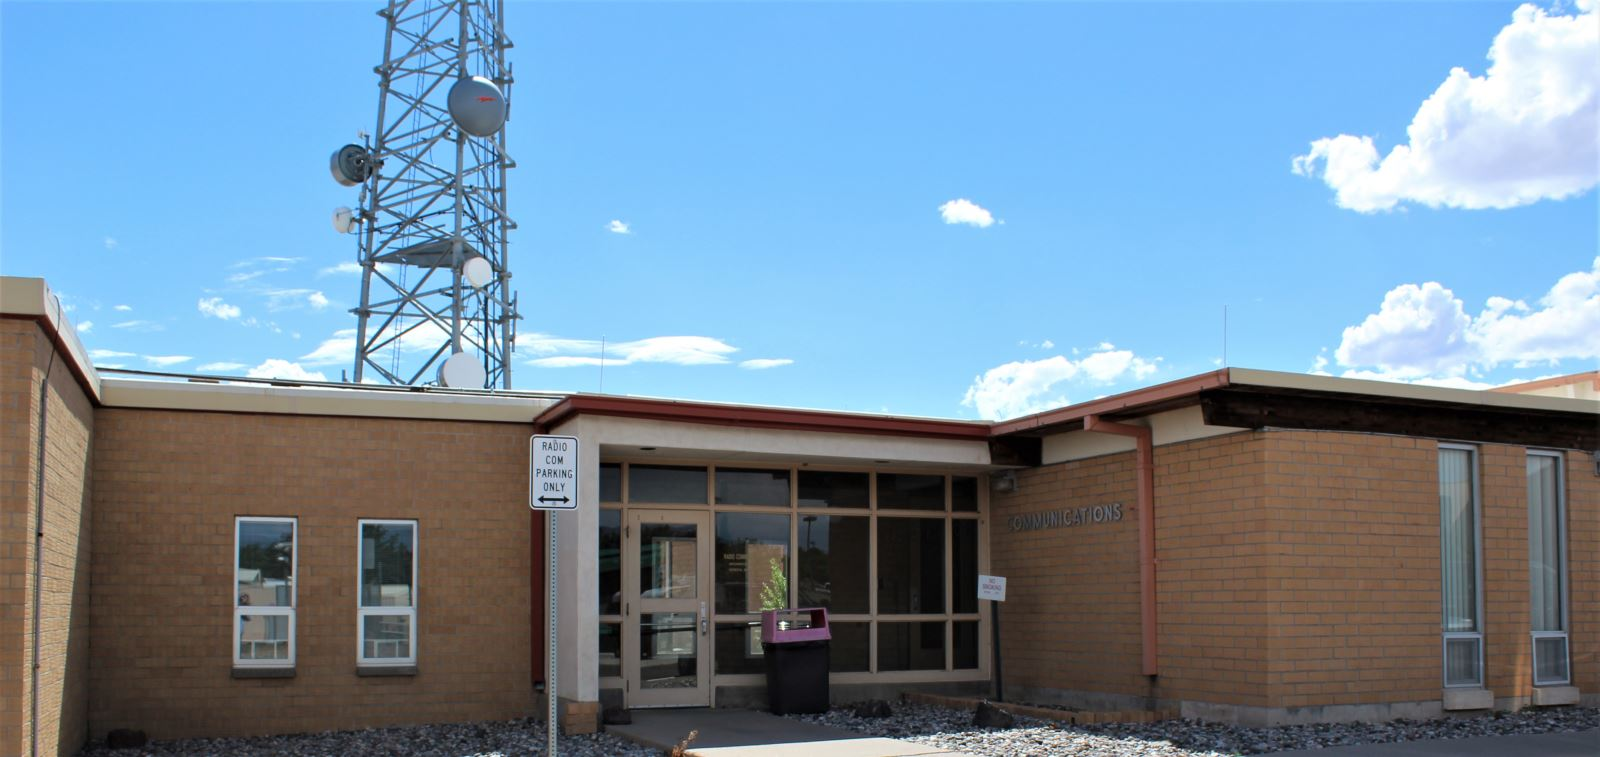 DPS GSD Communications Building